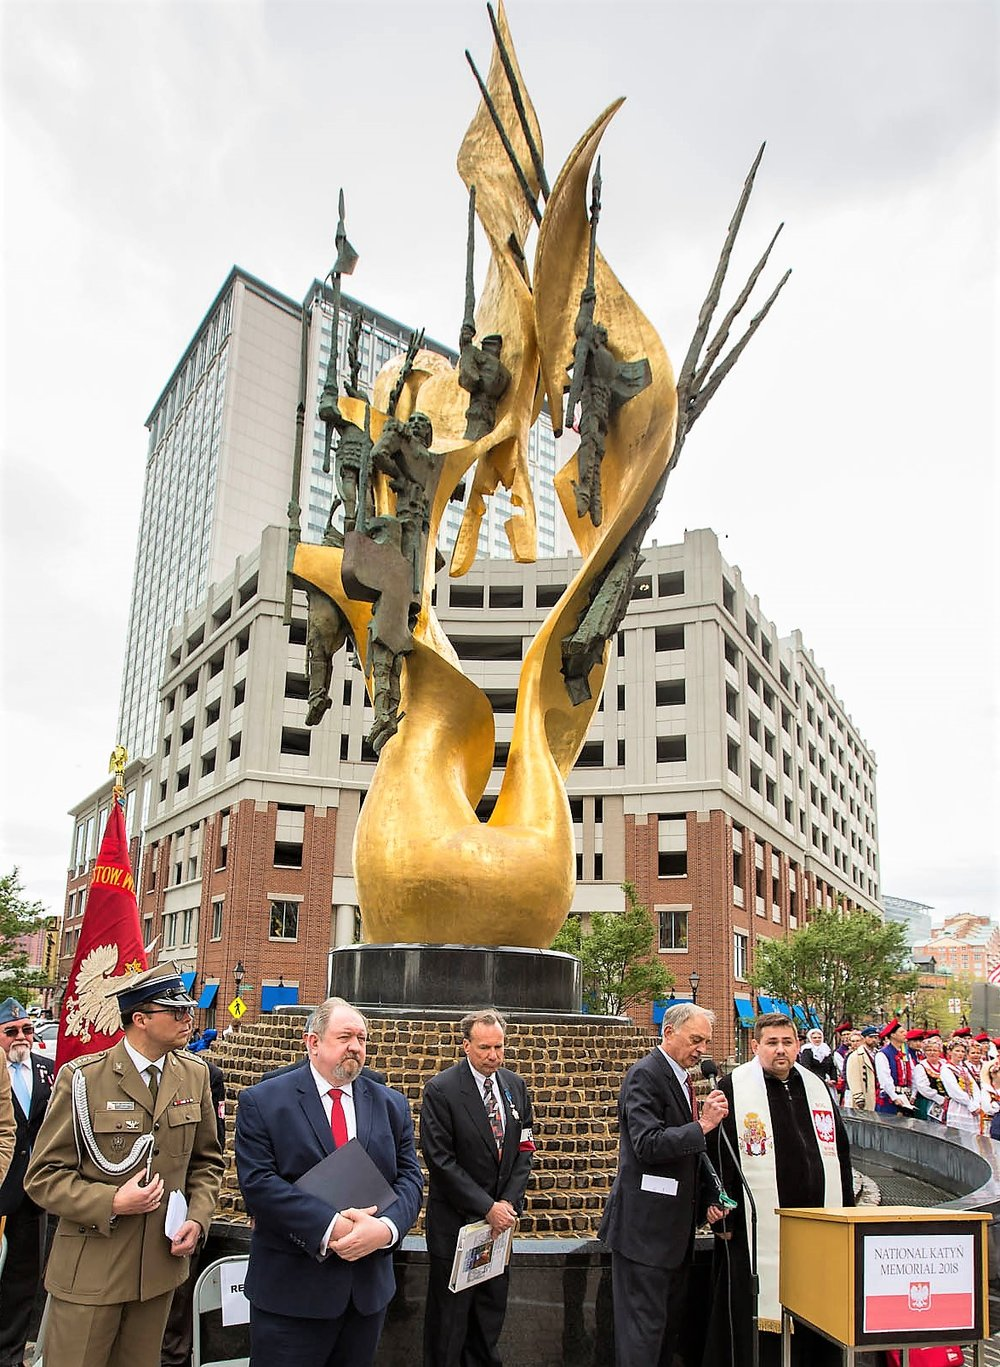 At the National Katyn Memorial.  Shown at the opening ceremonies of the 18th Annual Katyn Remembrance in Baltimore are, from left, Colonel Michal Sprengel and Minister/Counselor Piotr Erenfeicht – both representing the Embassy of the Republic Poland, MC Thomas Rybczynski and Chairman Richard Poremski – both NKMF officers, and Fr. Ryszard Czerniak – Holy Rosary Church, all assembled in front of the National Katyn Memorial.